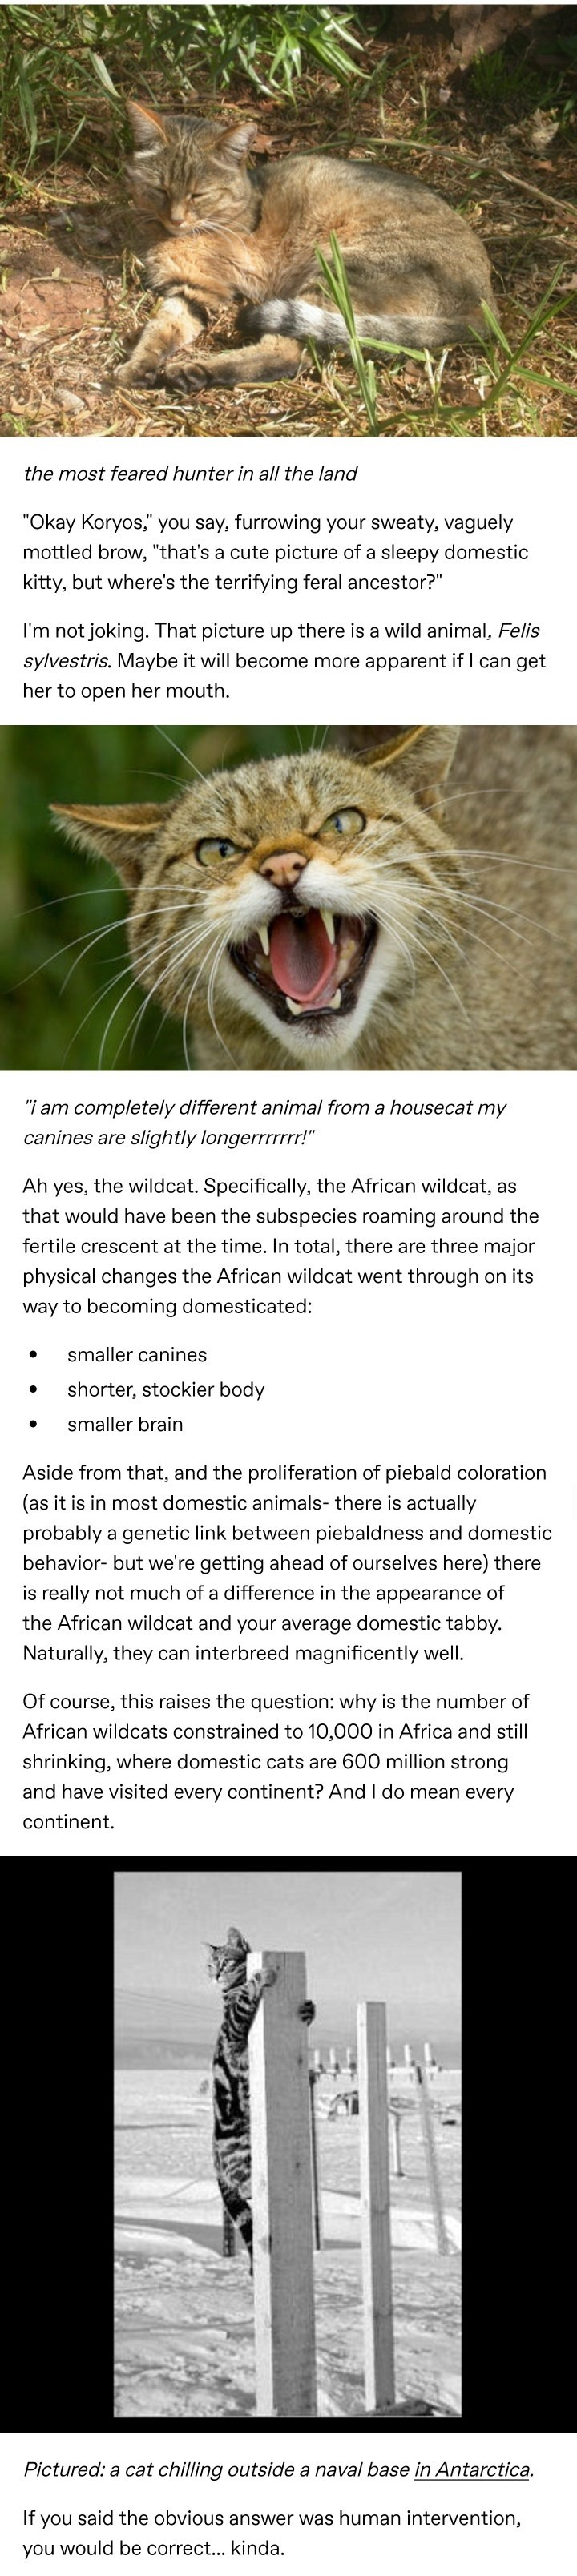 """Roar - the most feared hunter in all the land """"Okay Koryos,"""" you say, furrowing your sweaty, vaguely mottled brow, """"that's a cute picture of a sleepy domestic kitty, but where's the terrifying feral ancestor?"""" I'm not joking. That picture up there is a wild animal, Felis sylvestris. Maybe it will become more apparent if I can get her to open her mouth. """"i am completely different animal from a housecat my canines are slightly longerrrrrrr!"""" Ah the wildcat. Specifically, the African wildcat, as ye"""